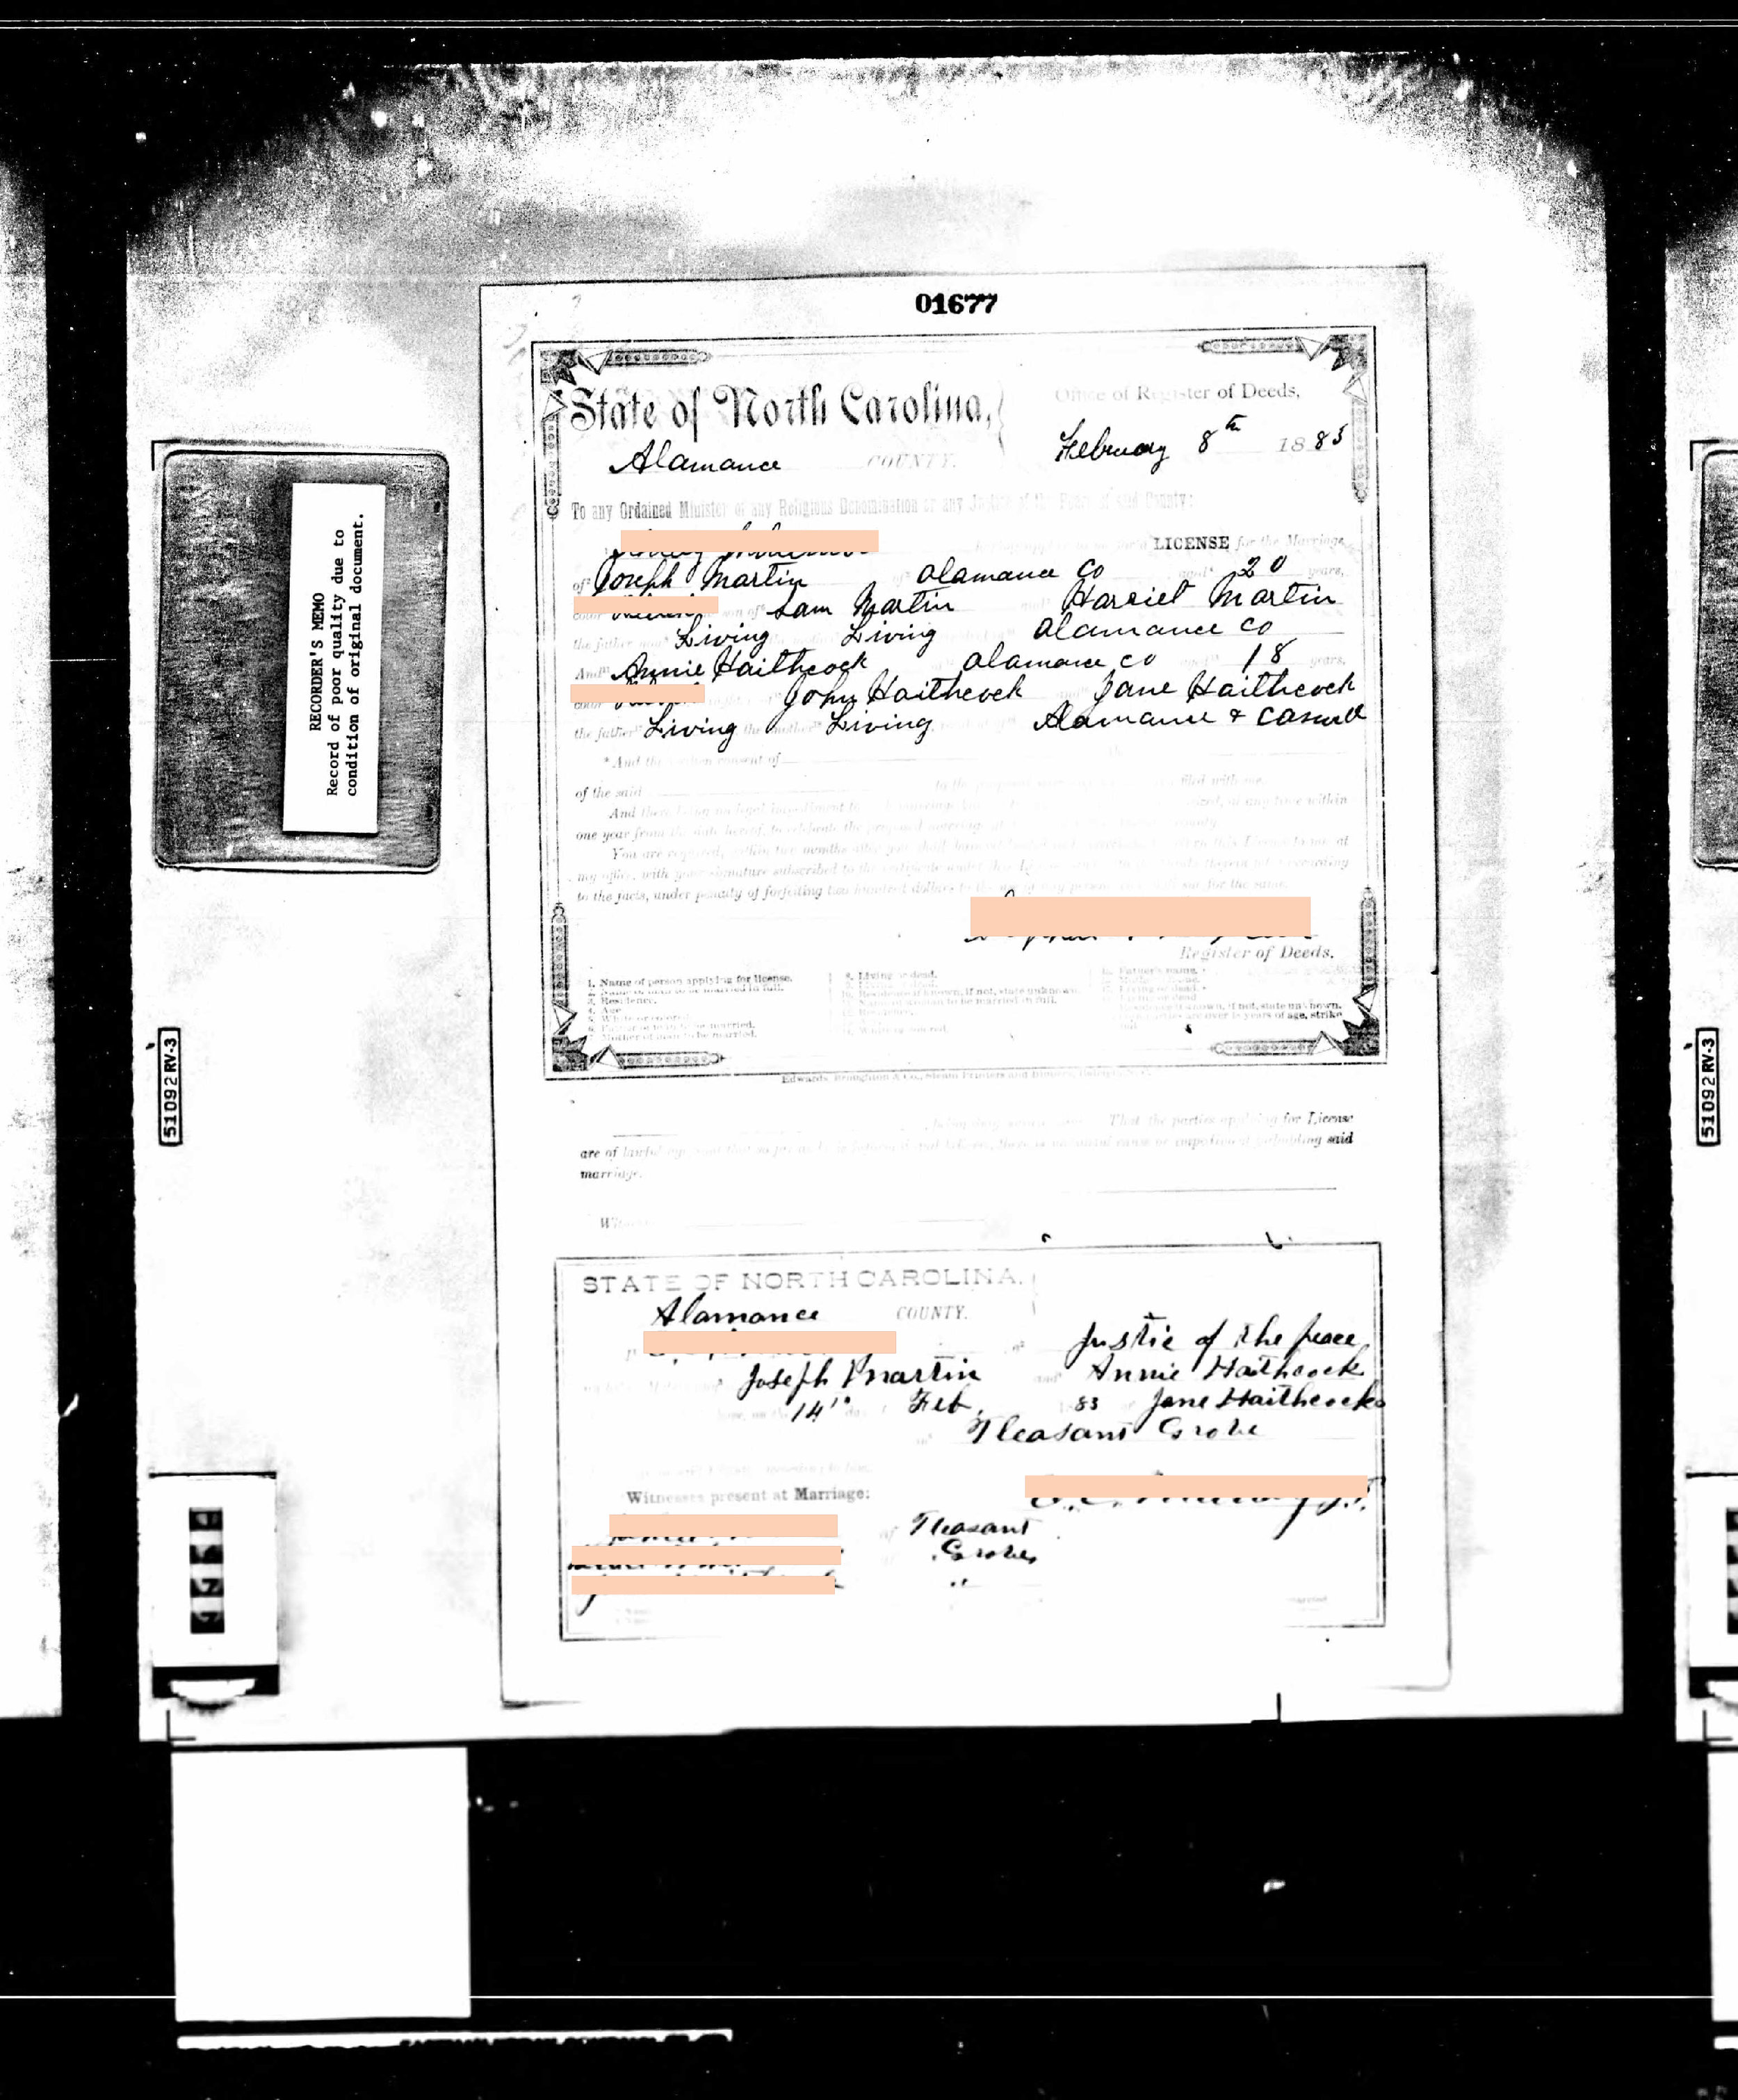 Generation 5:  'Married on Valentine's Day' kind of love (1883)    Redacted 1883 marriage certificate of Joseph B. Martin + Annie Haithcock (3x great grandparents) on Valentine's day of 1883, html hex color codes sourced from photographs of my mother.  Digital print  19 x 16 in